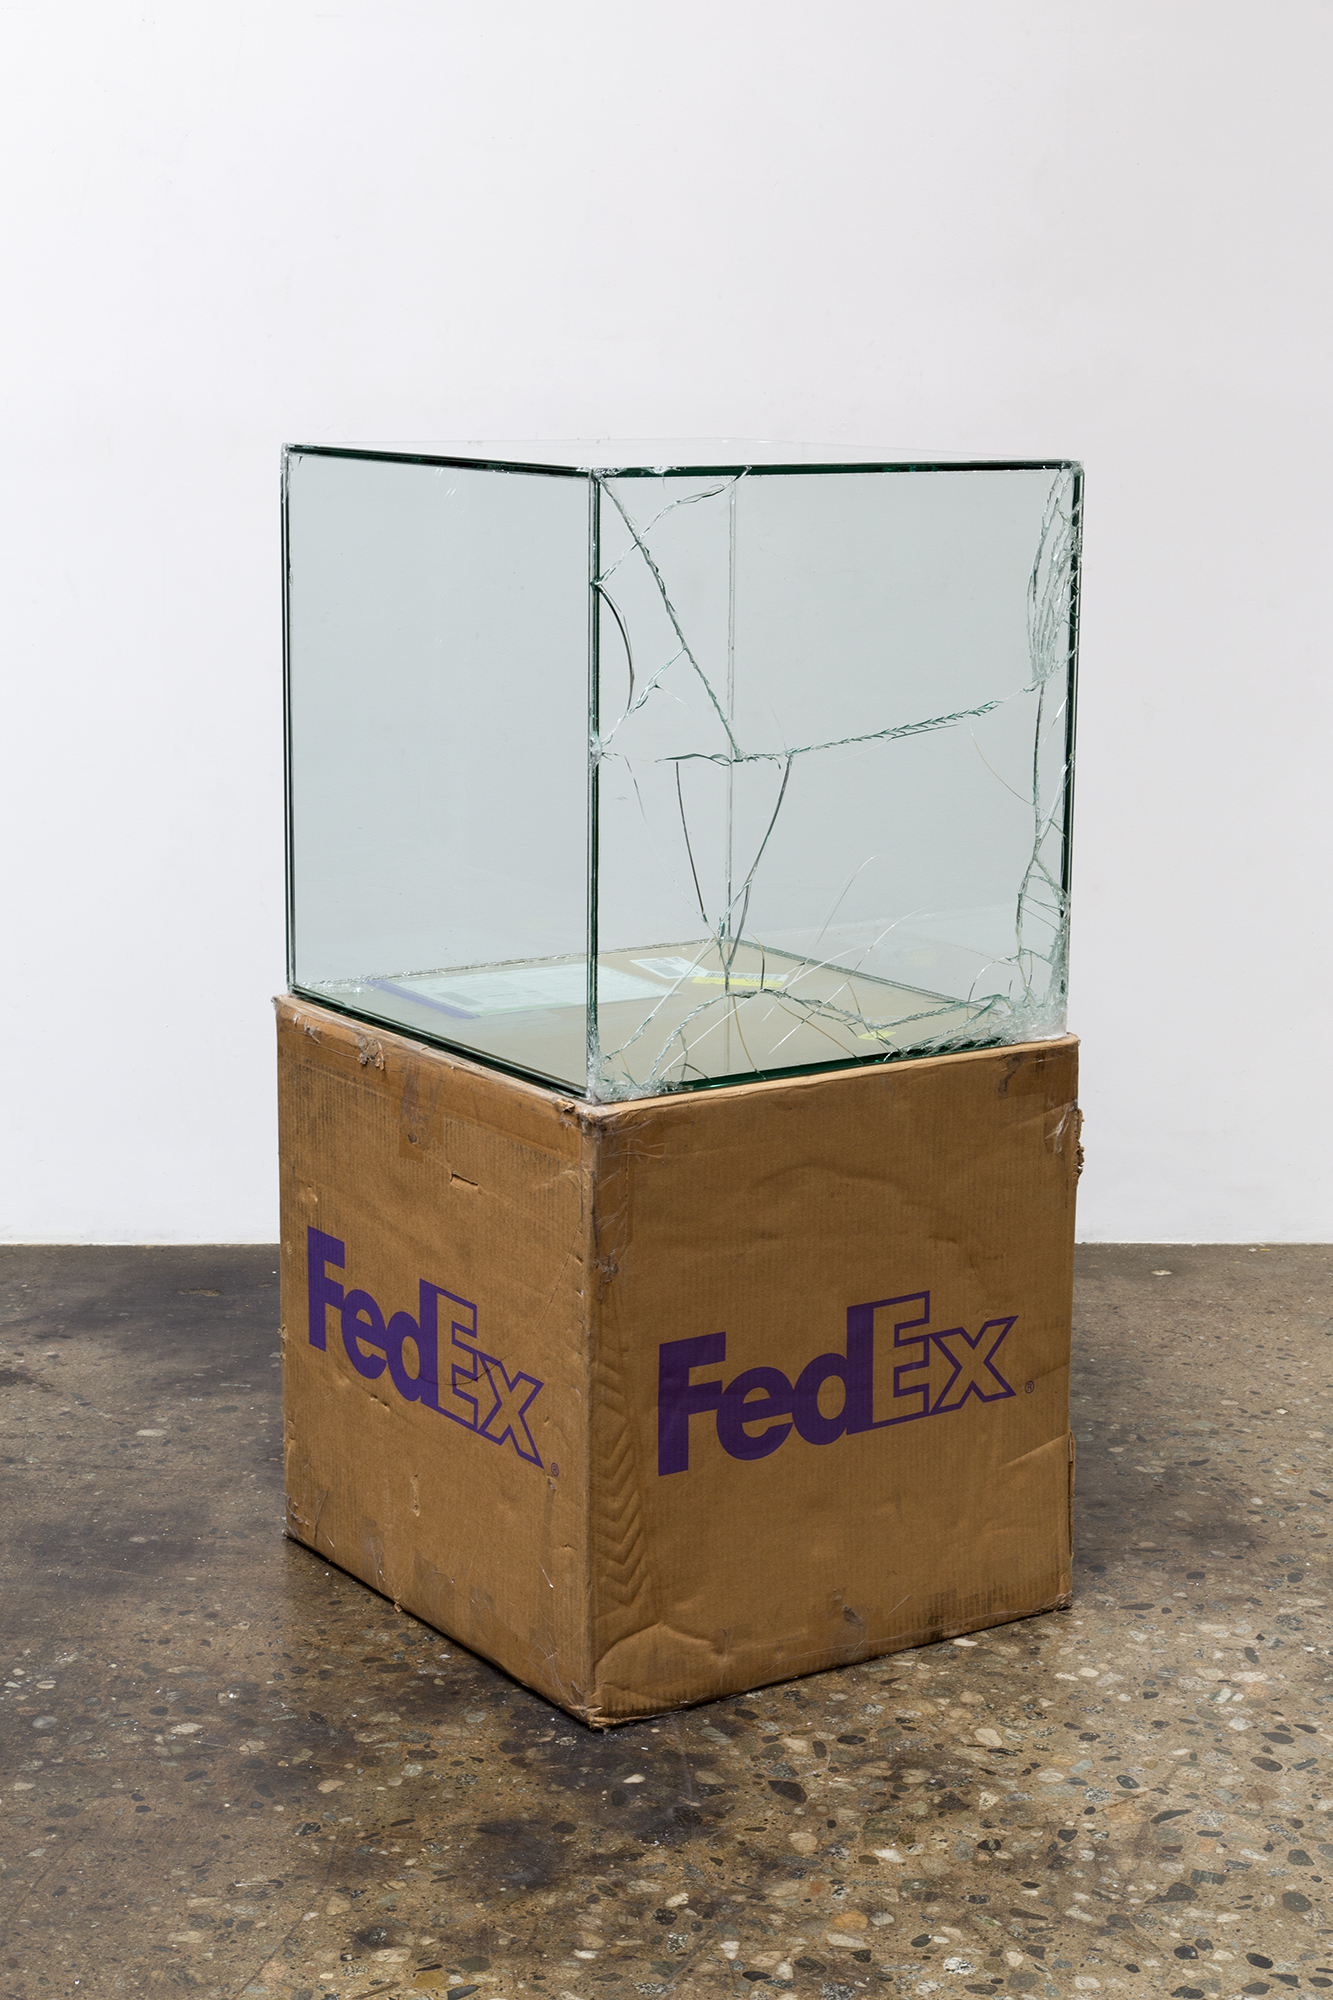 FedEx® Large Kraft Box  © 2008 FEDEX 330510 REV 6/08 GP, International Priority, Los Angeles–Tokyo trk#778608484821, March 9–13, 2017, International Priority, Tokyo–Los Angeles trk#805795452126, July 13–14, 2017    2017–   Laminated glass, FedEx shipping box, accrued FedEx shipping and tracking labels, silicone, metal, tape  24 x 24 x 24 inches   Transparencies, 2017